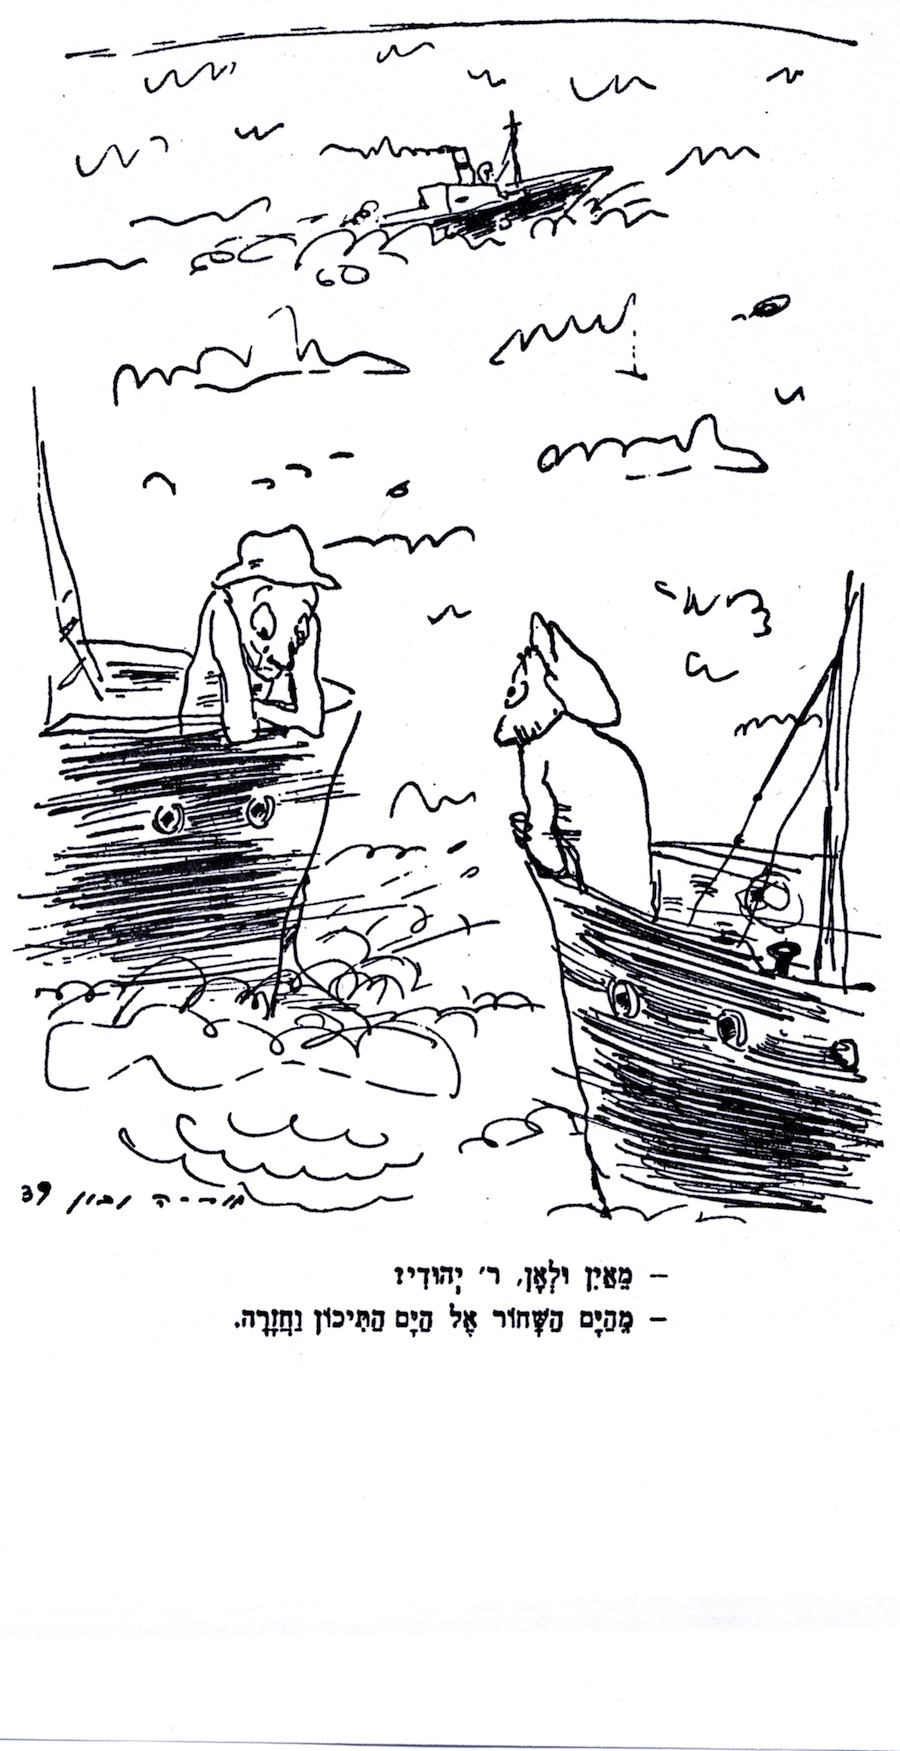 "Arie Navon was the cartoonist for    Davar   , the Hebrew-language daily newspaper of the Labor Zionist movement, in British Mandatory Palestine. Although not specifically about the St. Louis, this cartoon, published on April 30, 1939, captured the mood of despair among Jewish refugees seeking haven. The passenger on one ship asks, ""Where are you coming from, and where are you going?"" The second man replies: ""From the Black Sea to the Mediterranean, and back."""